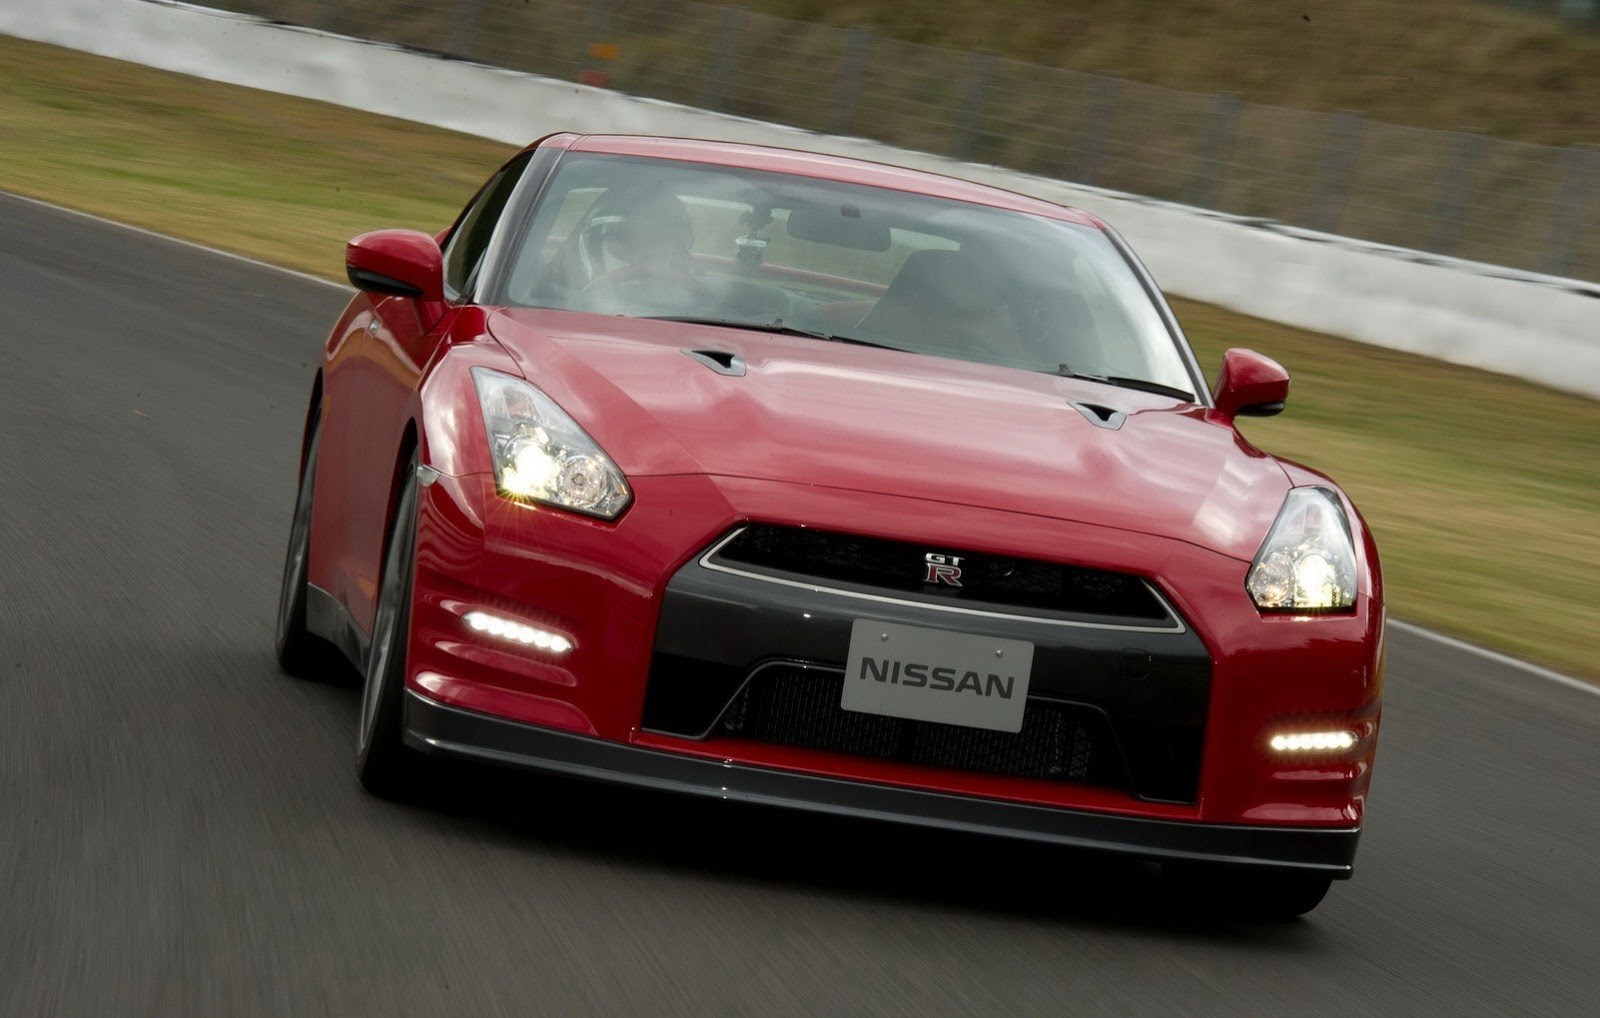 Nissan GT-R to Make Another Attempt at Lap Record